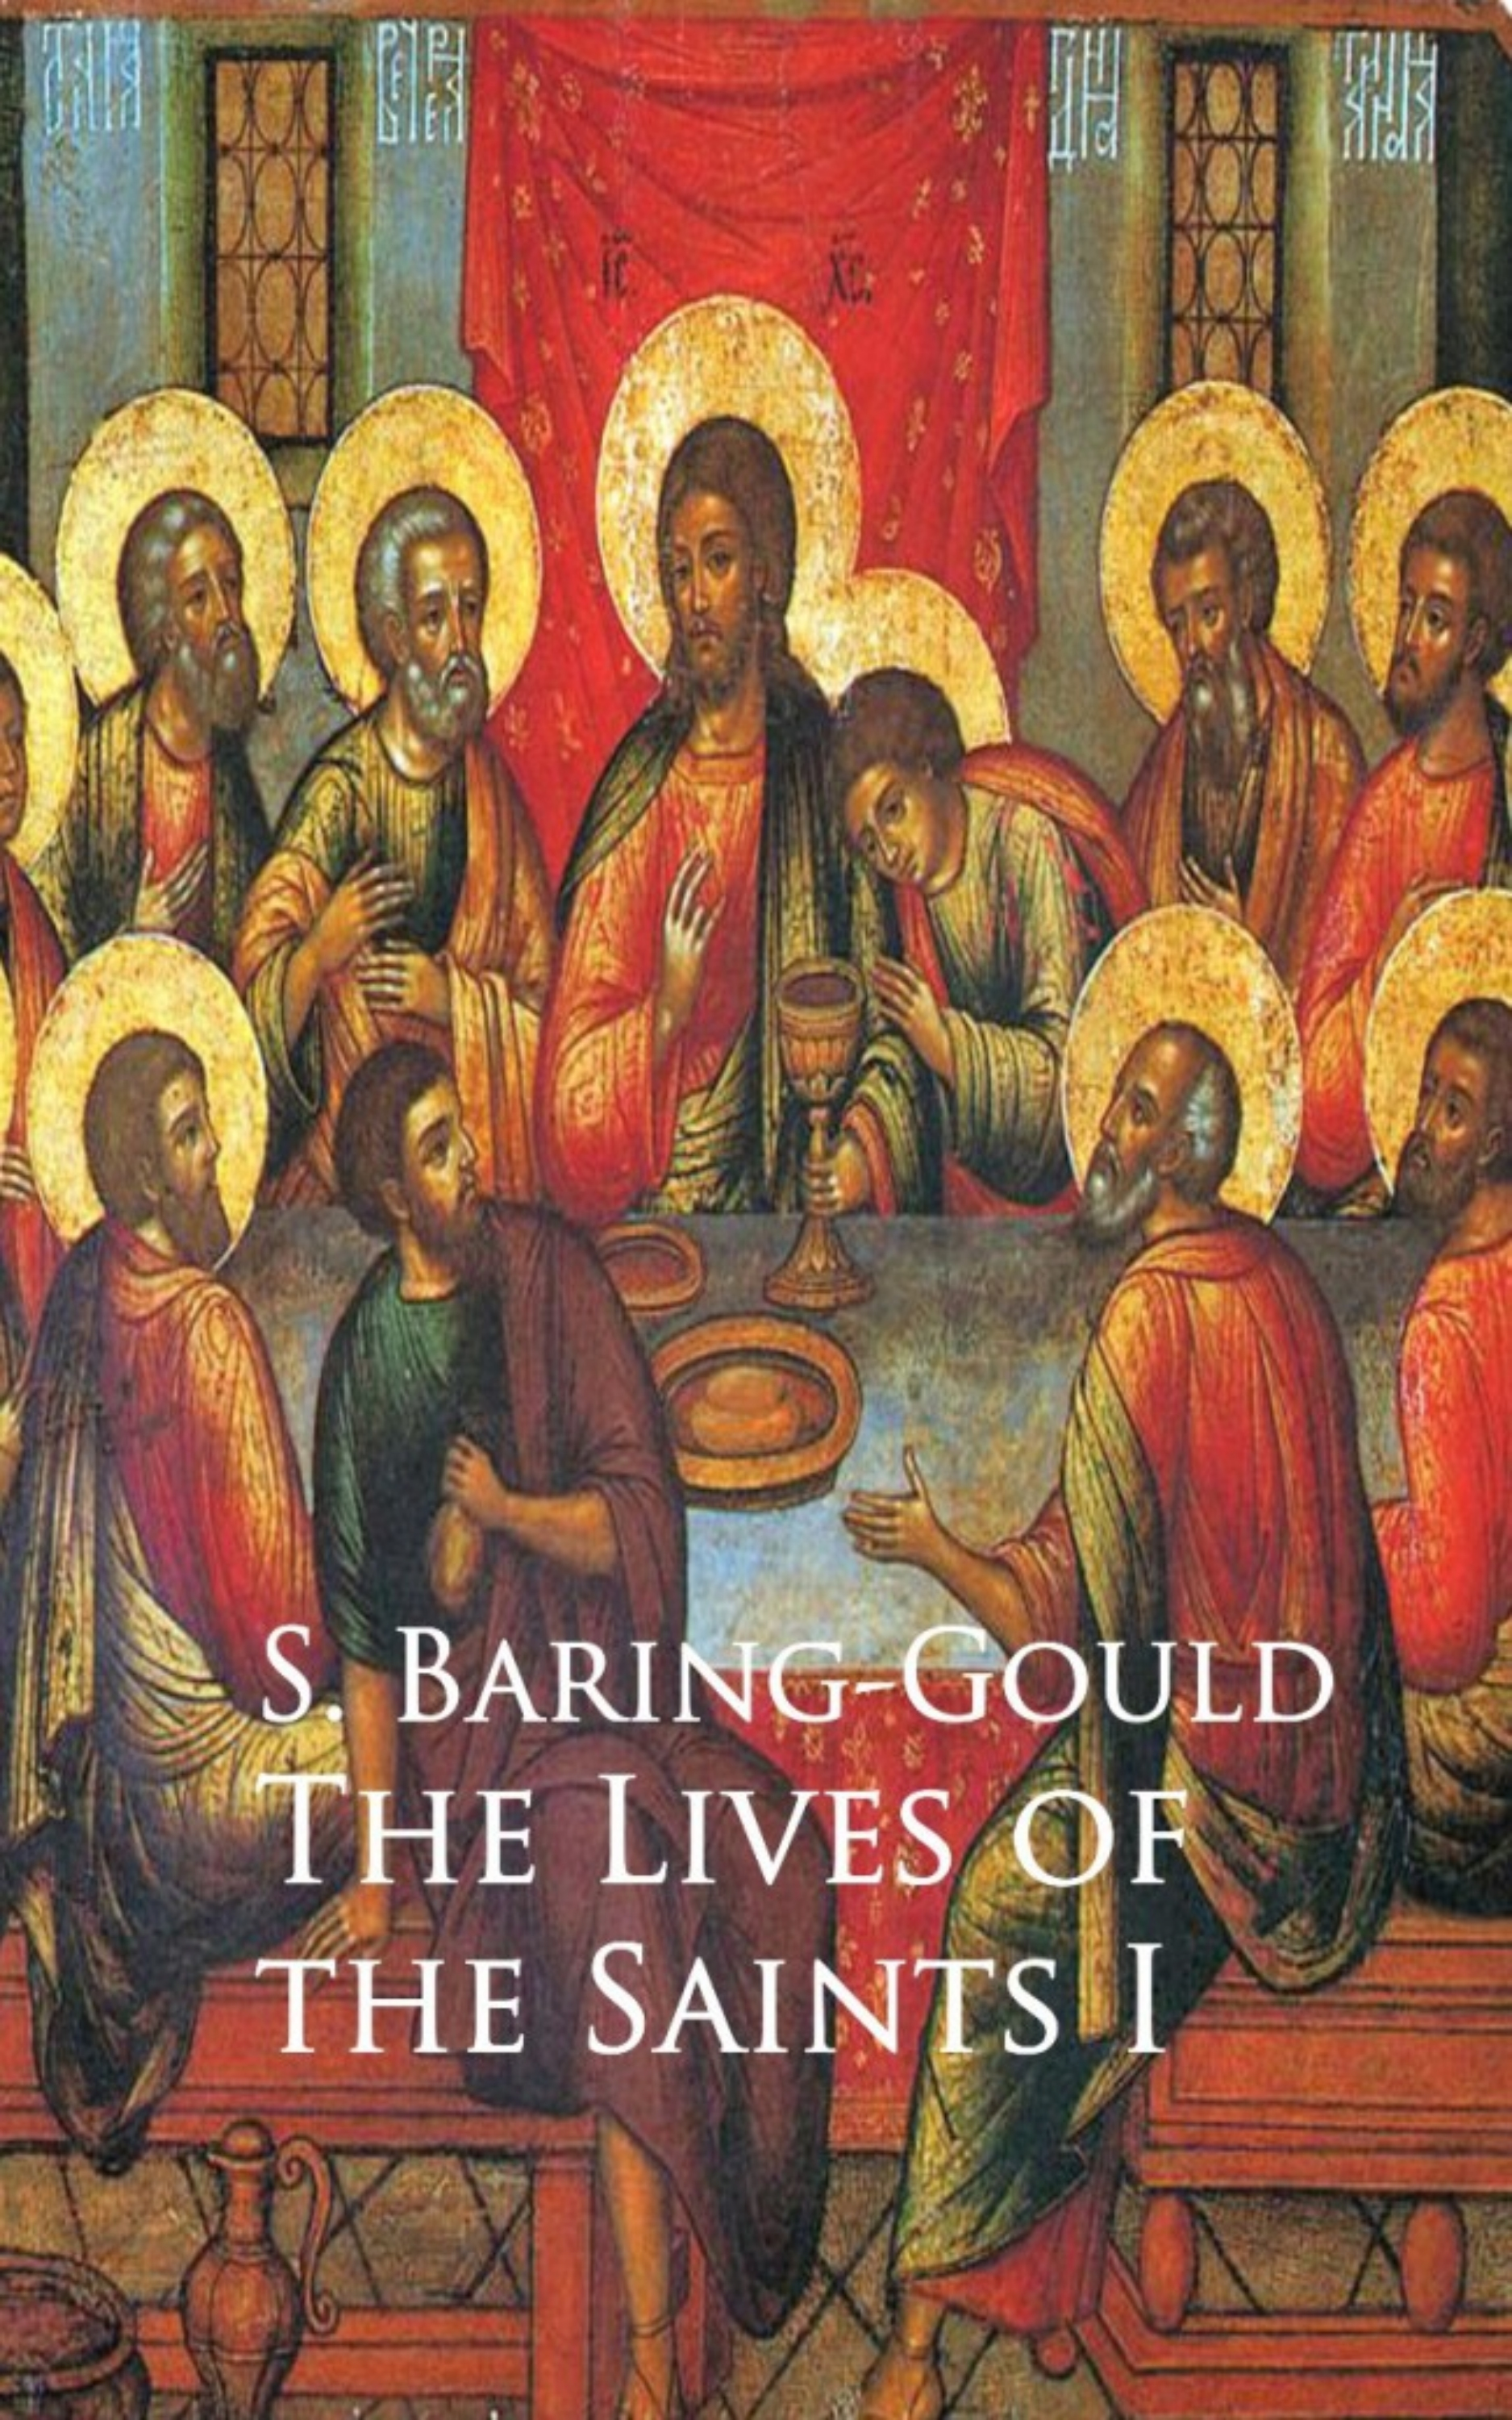 S. Baring-Gould Lives of the Saints city of saints